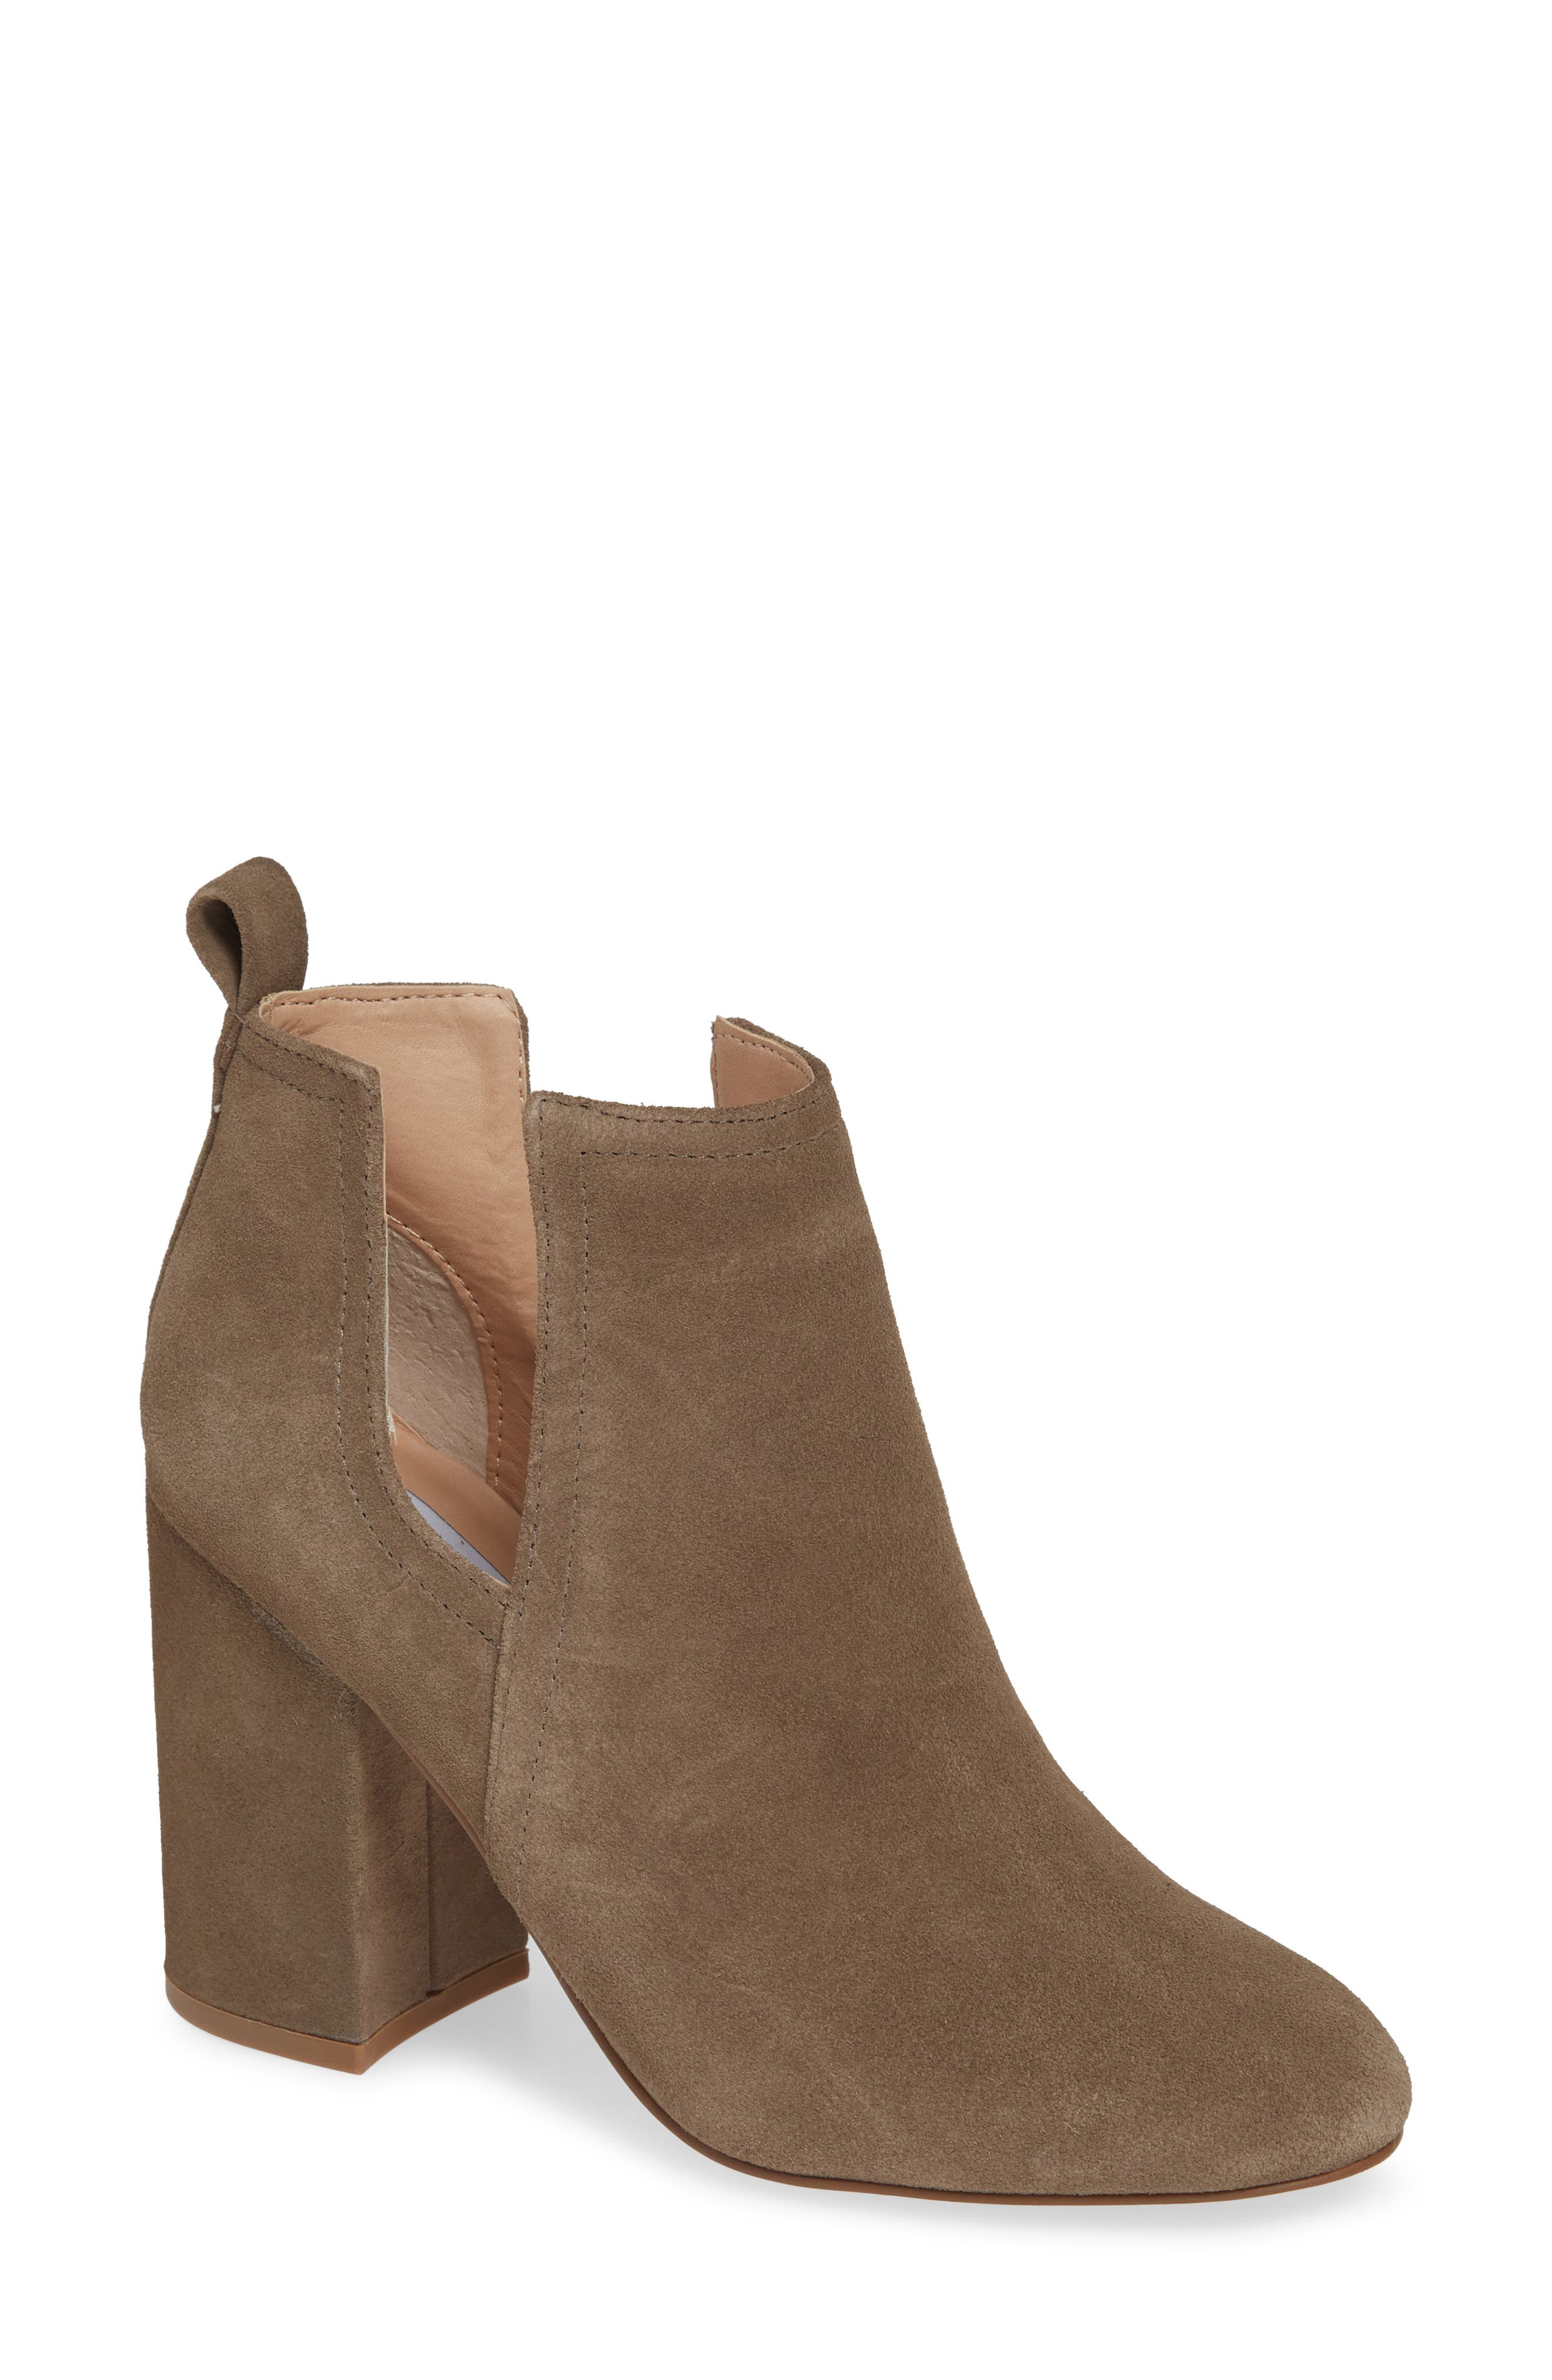 Nayna Bootie,                             Main thumbnail 1, color,                             DARK TAUPE